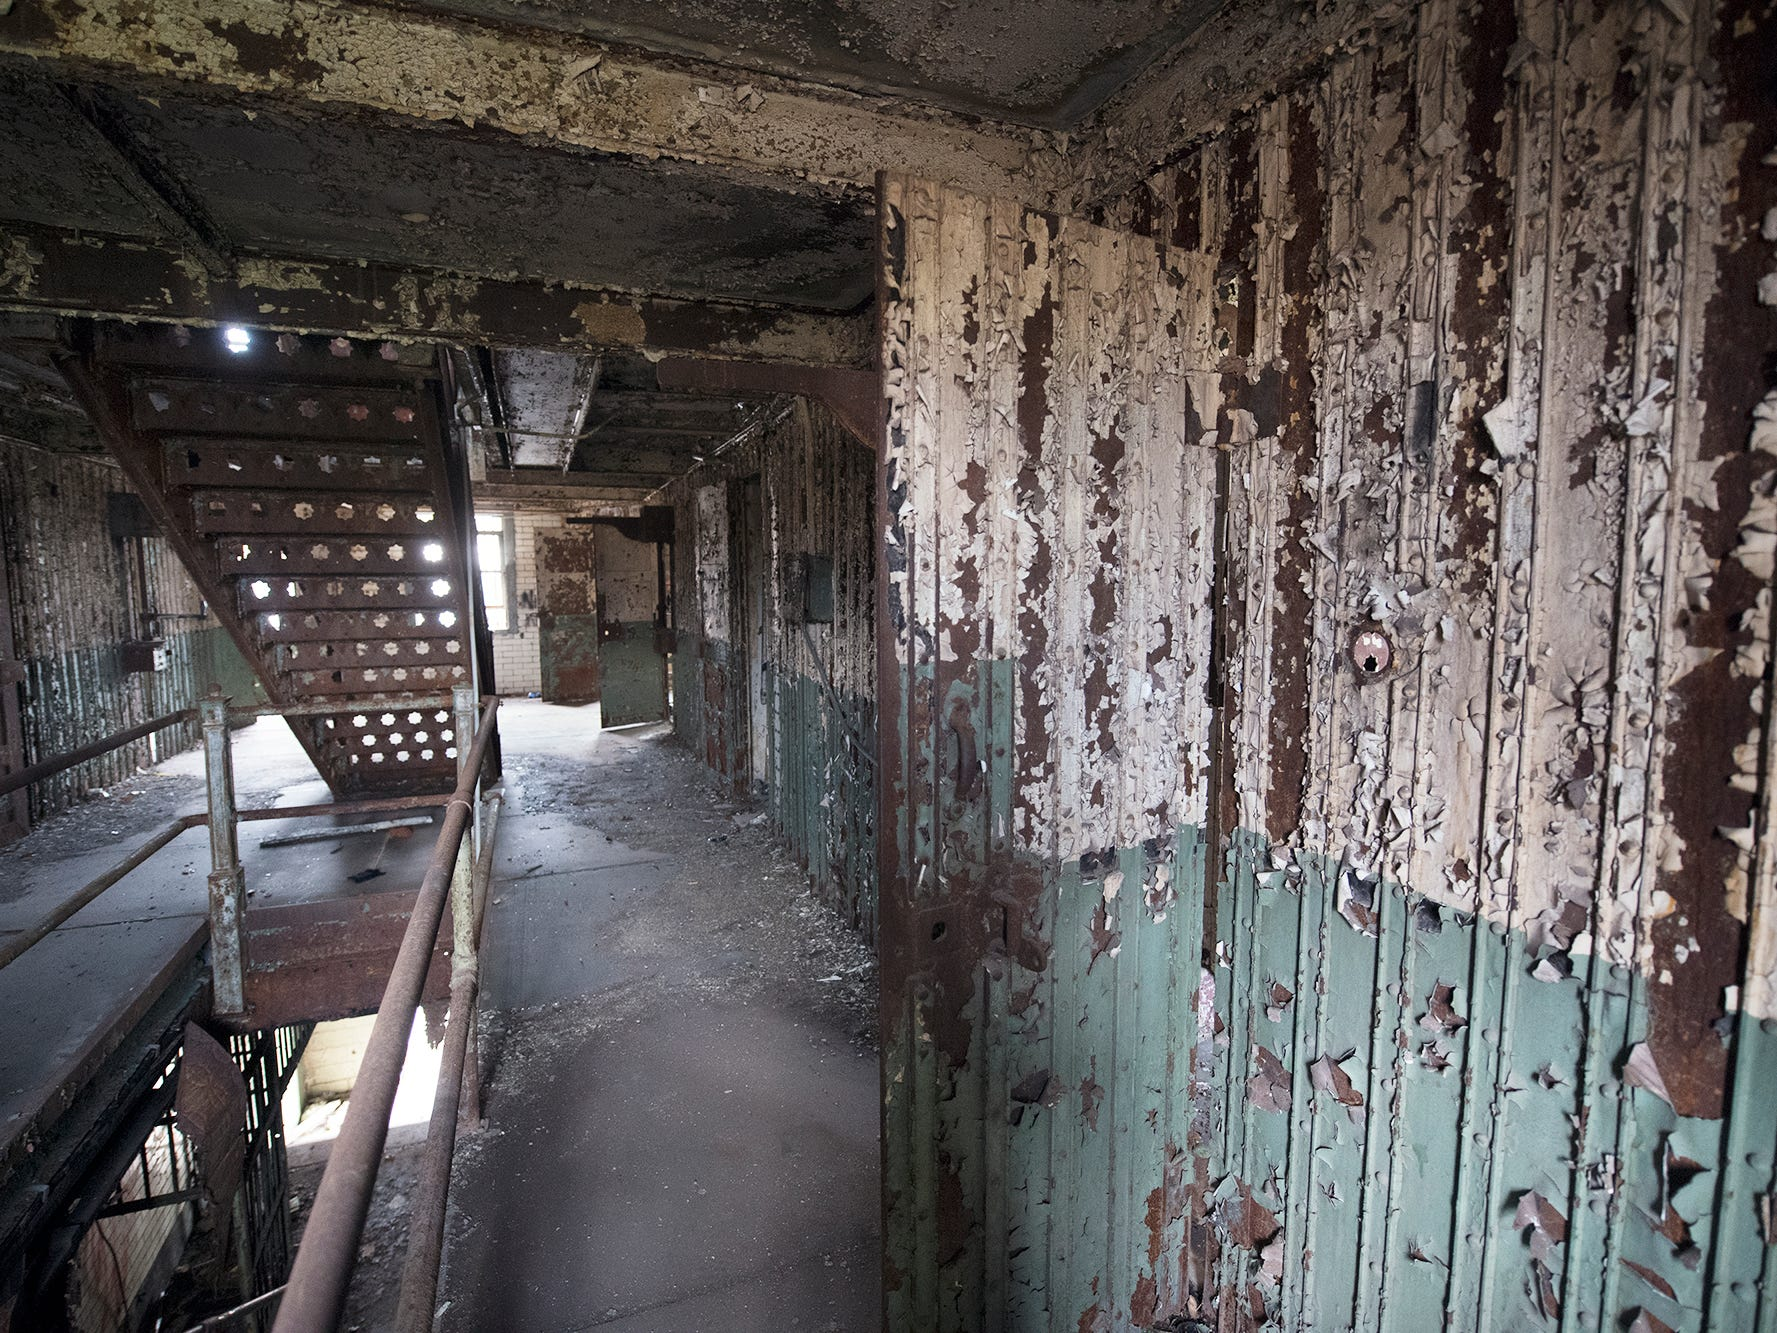 Paint peels on an upper floor inside the old York County Prison.